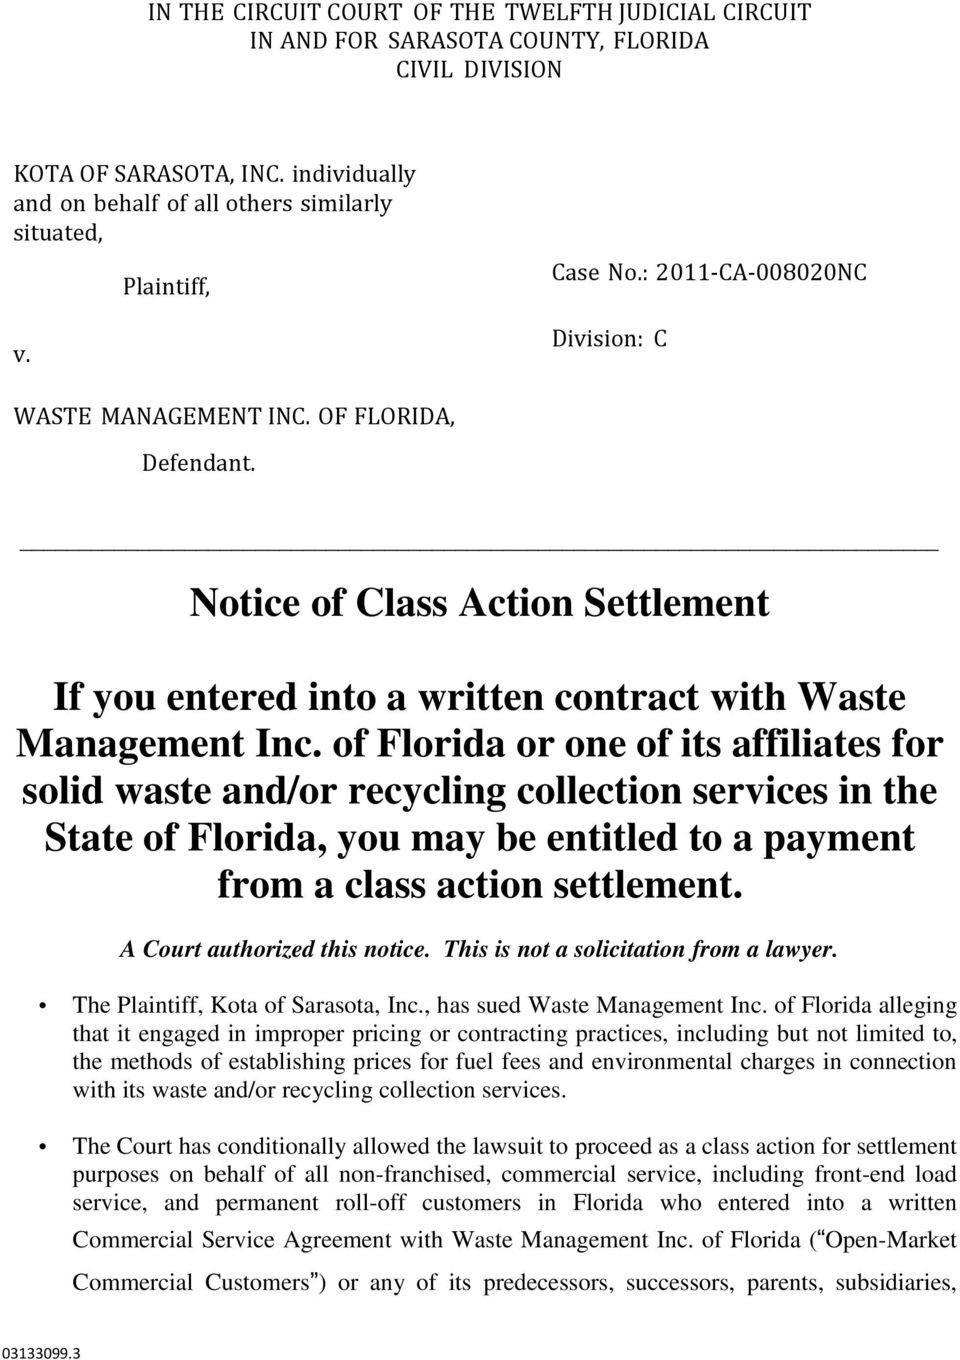 of Florida or one of its affiliates for solid waste and/or recycling collection services in the State of Florida, you may be entitled to a payment from a class action settlement.